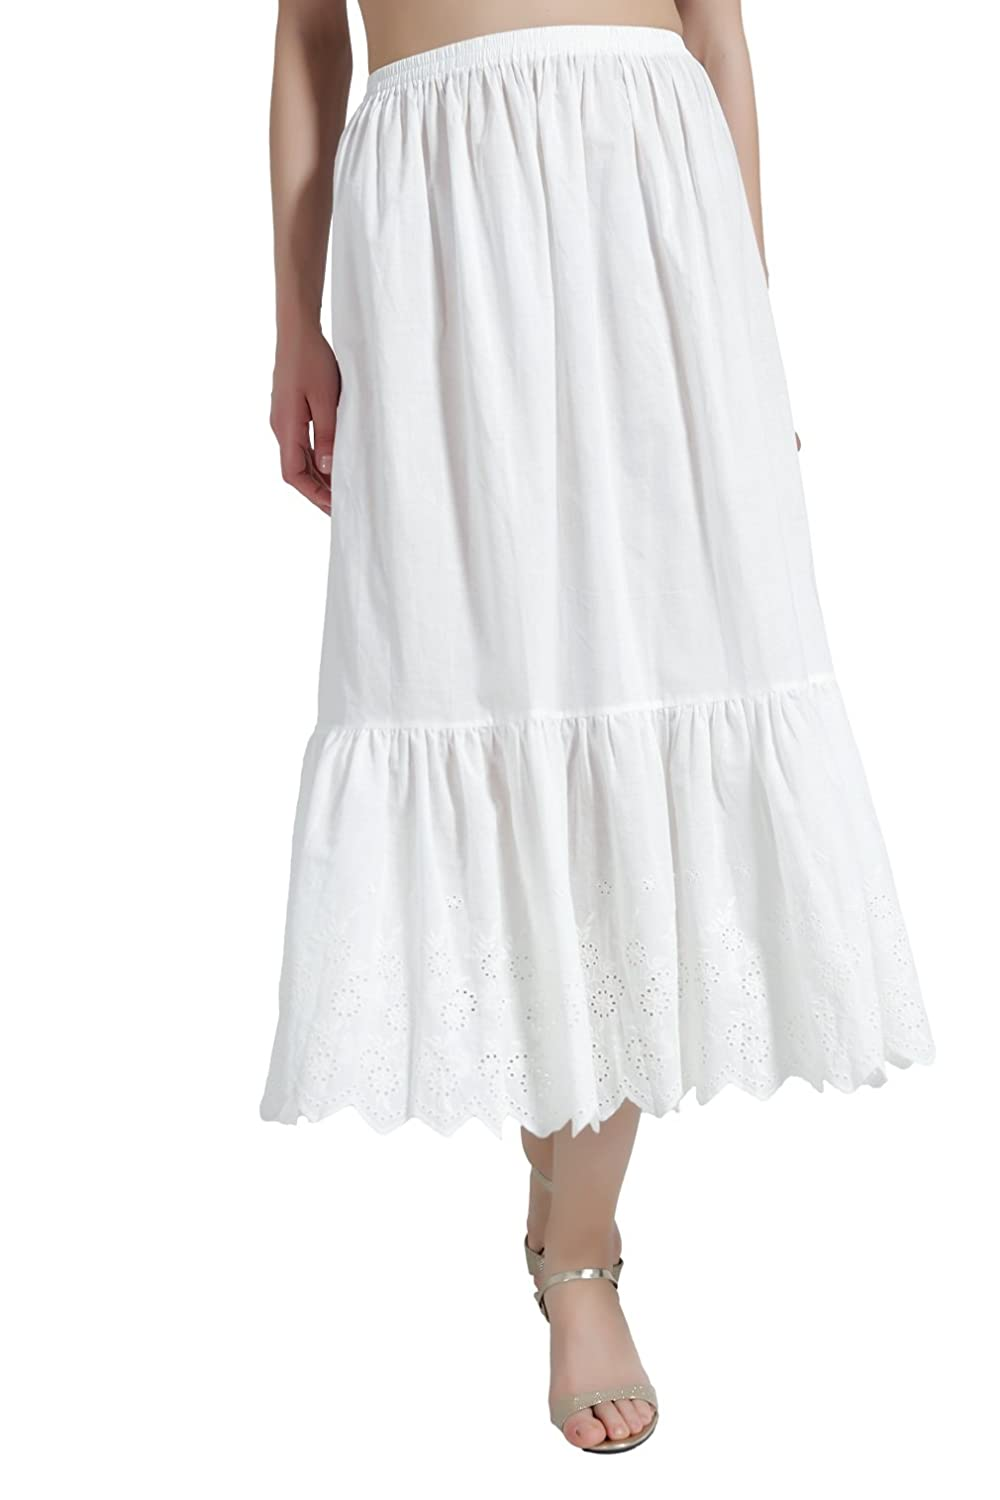 BEAUTELICATE Half Slip Underskirt for Women 100% Cotton Petticoat with Lace Embroidery Ivory 70CM 80CM Length Size S M L